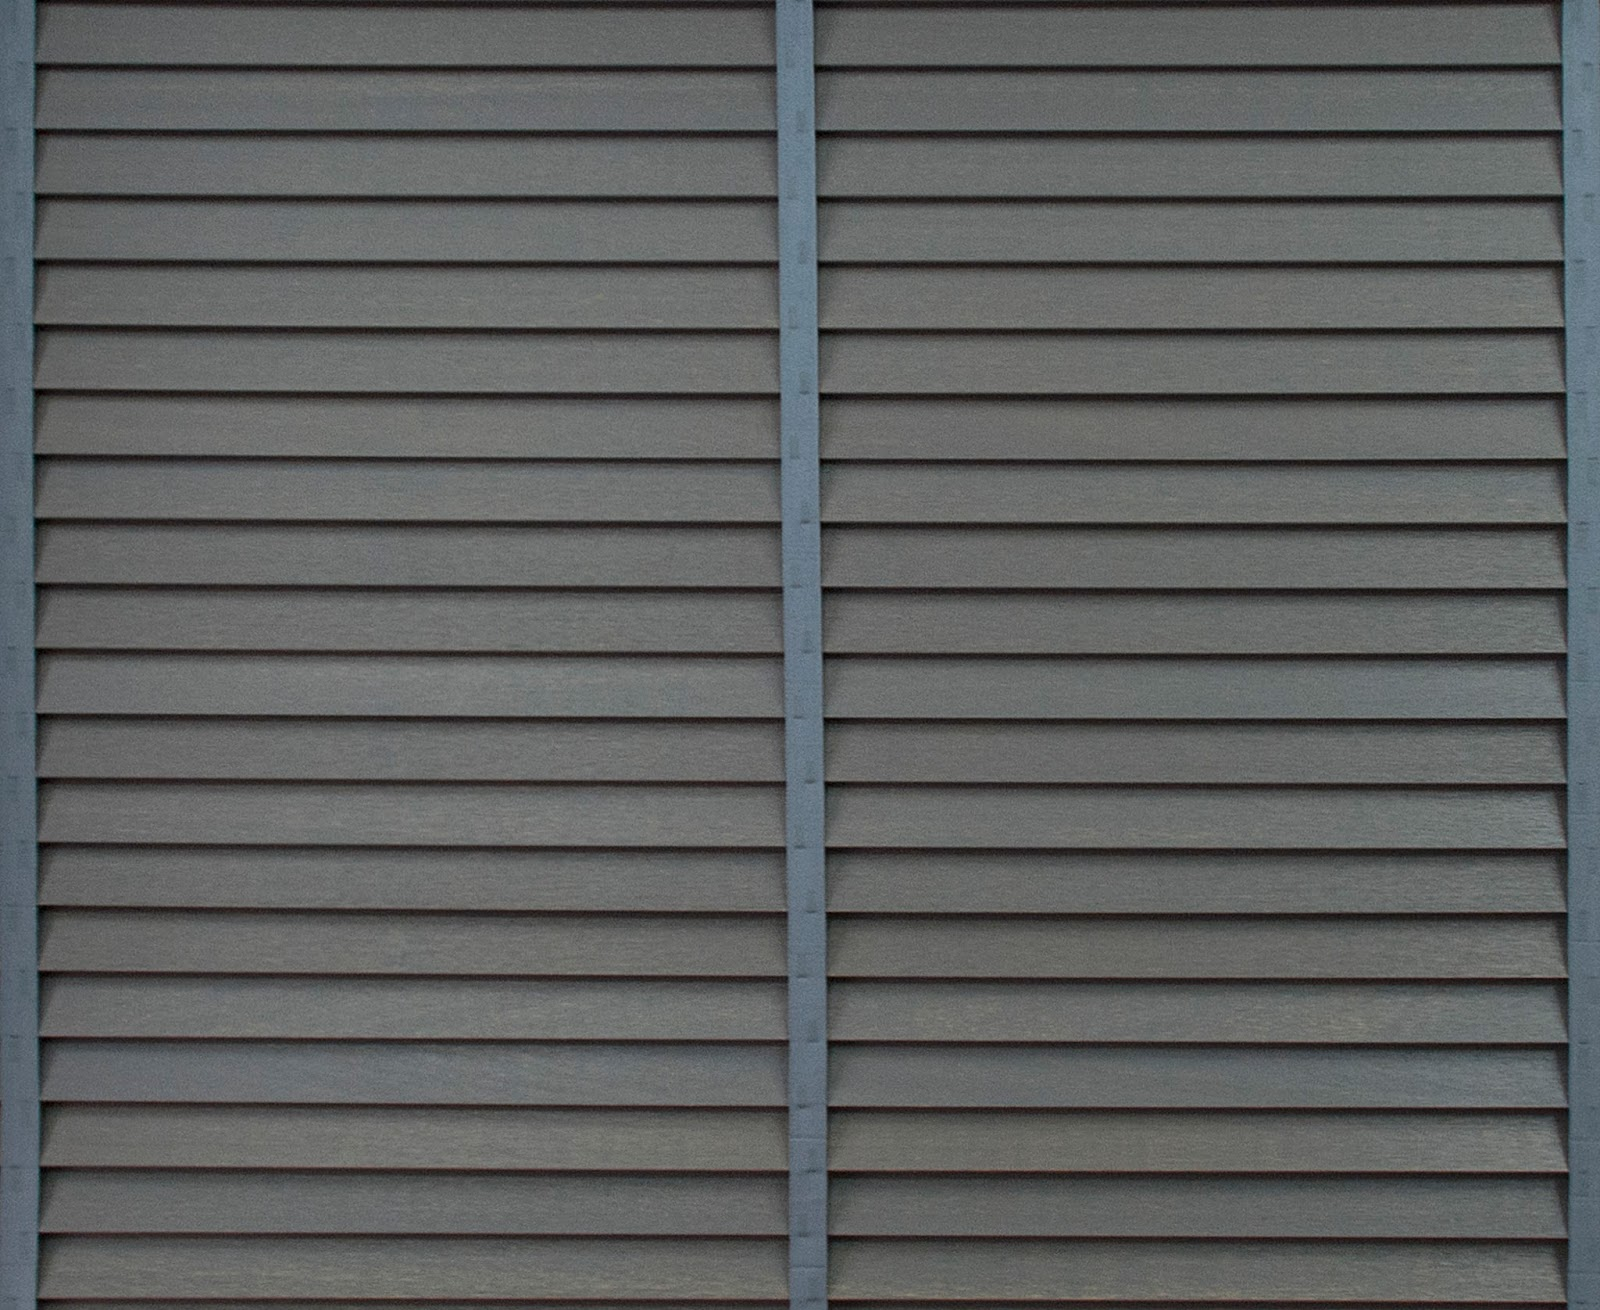 Grey Wooden Blinds Texture Texturise Free Seamless